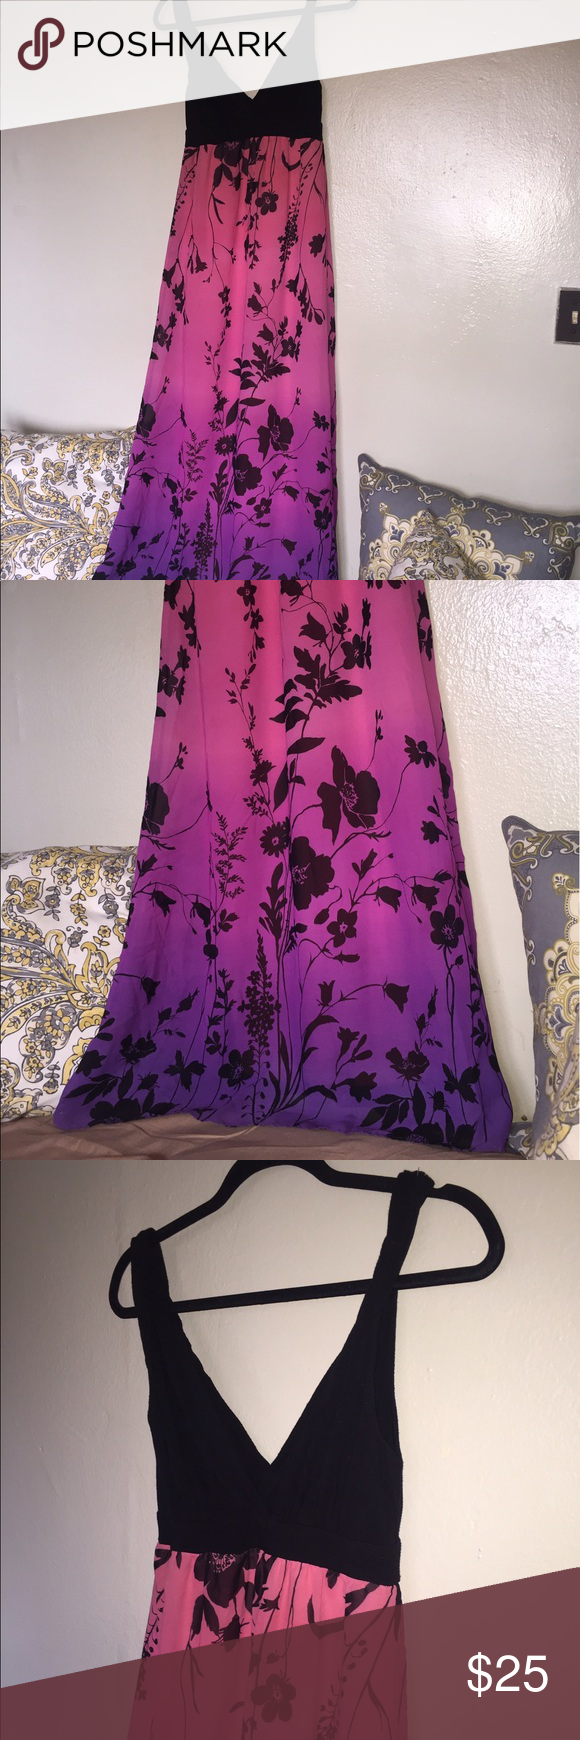 Maxi dress Black top is made out of spandex and bottom is a beautiful pink and purple ombré made of chiffon with black flower print. Maxi dress is fully lined and doesn't have a zipper. Forever 21 Dresses Maxi